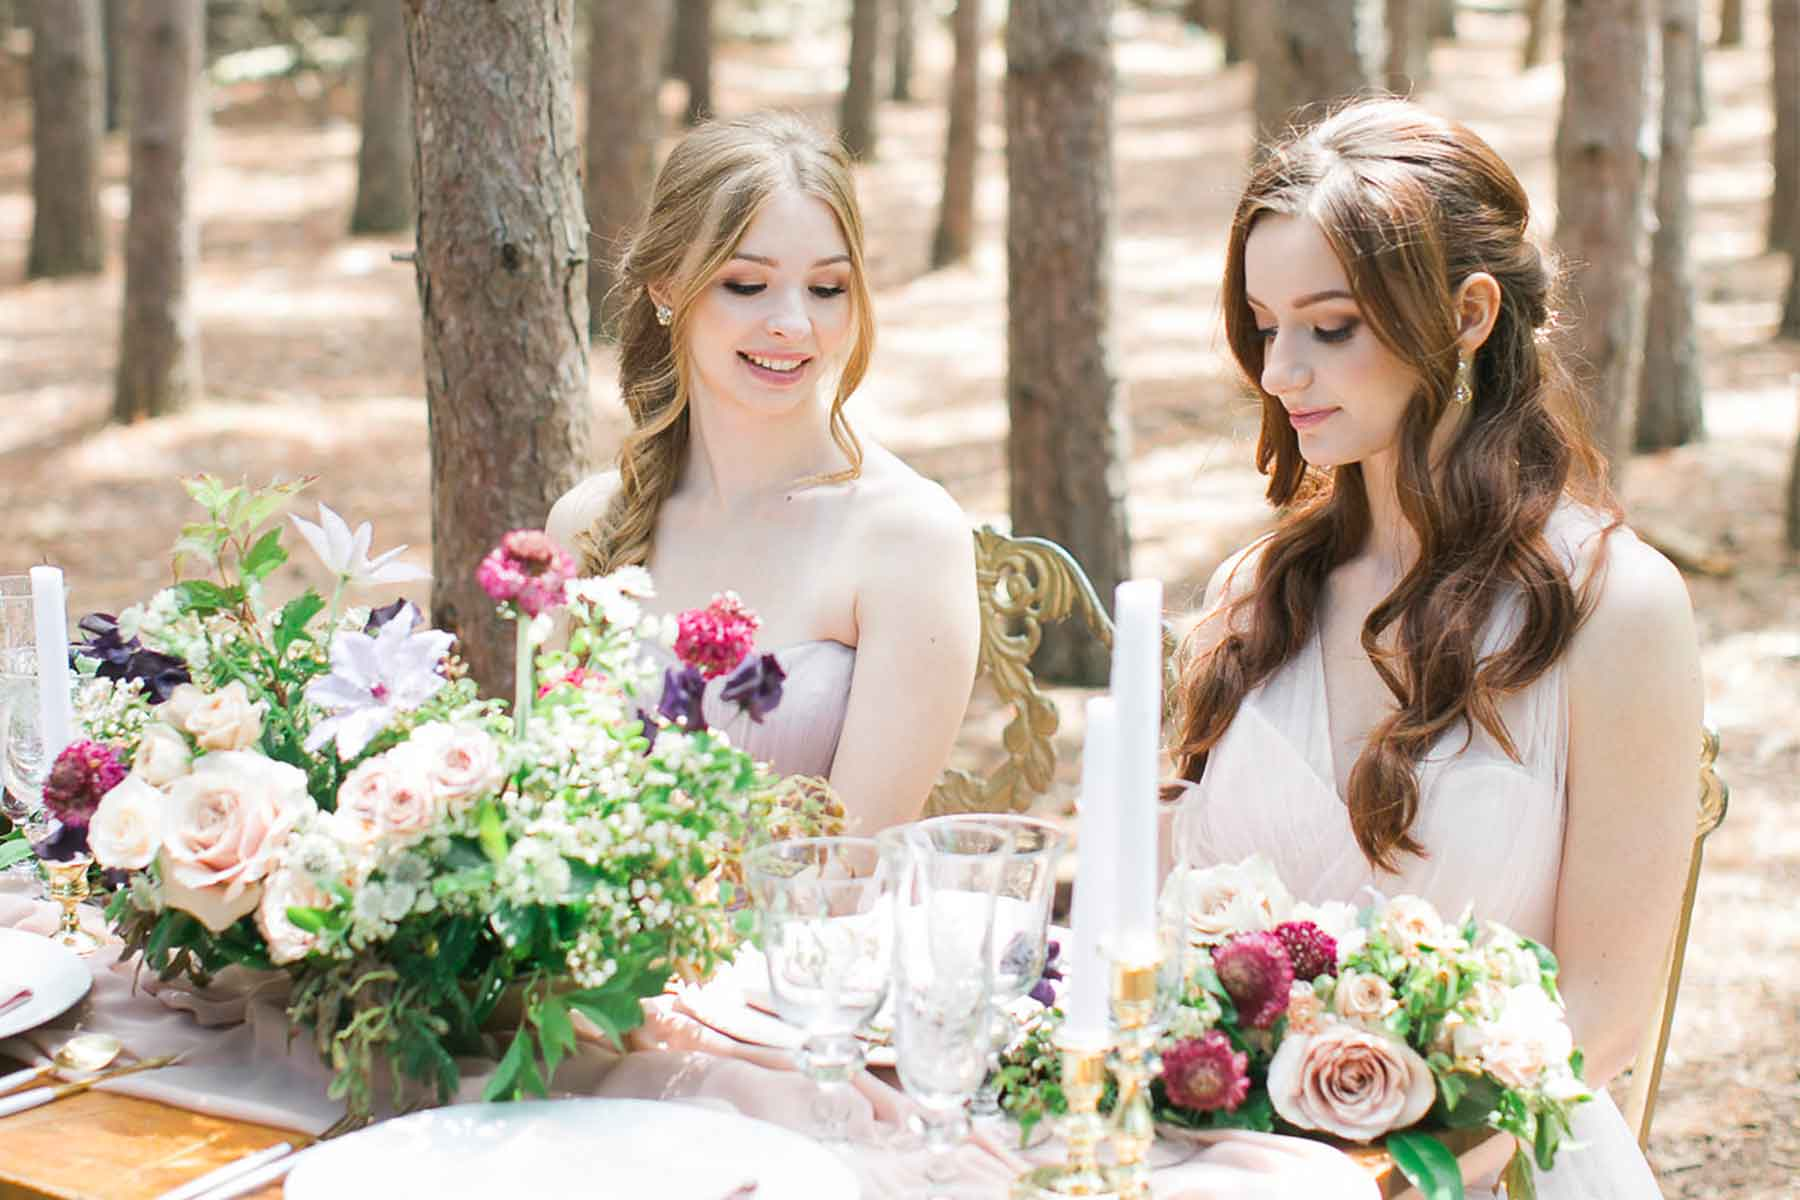 two brides maids sitting at the table with flowers and candles in the nature